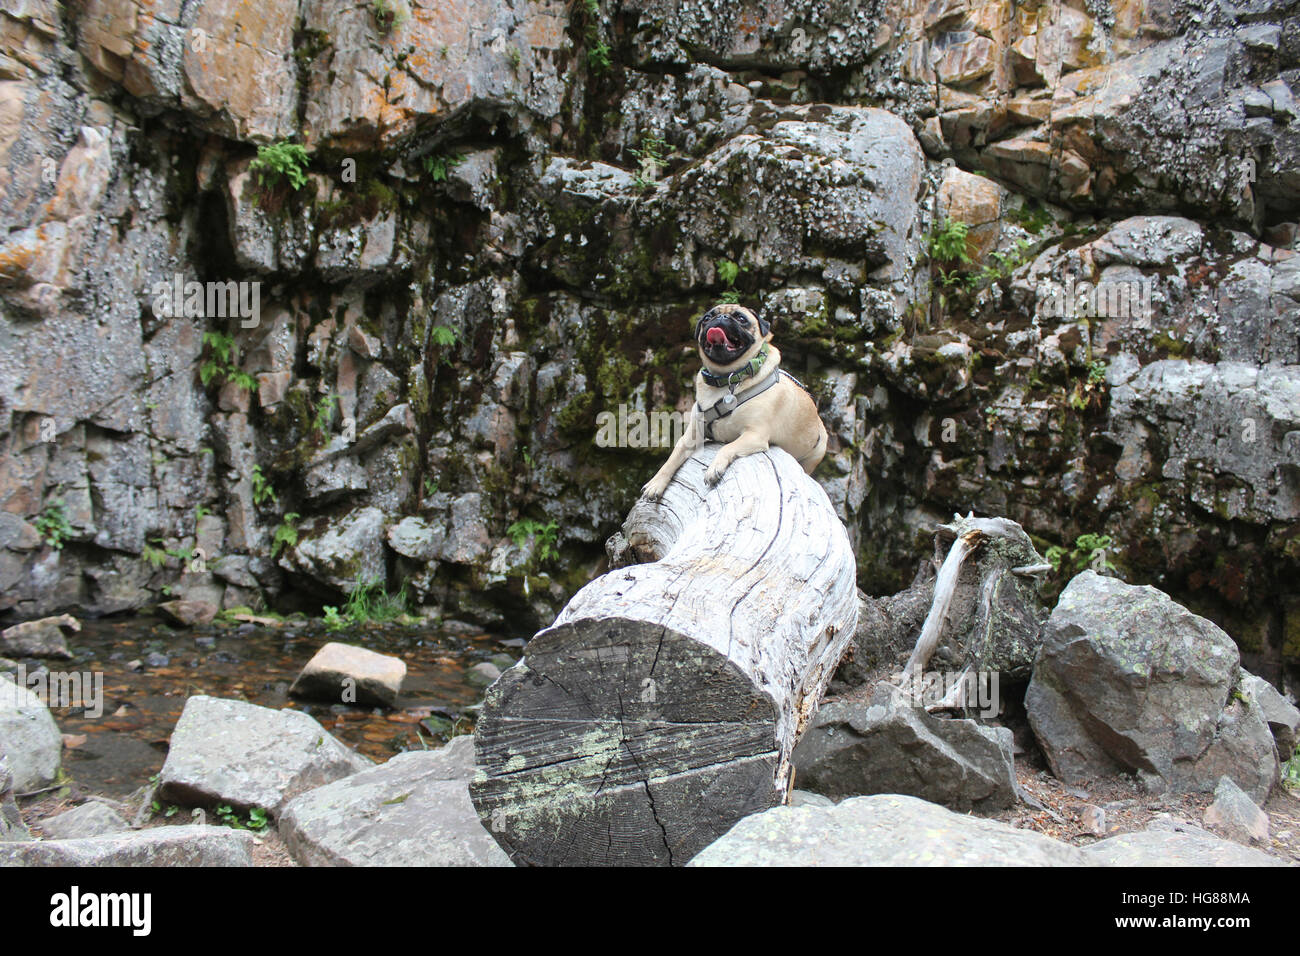 Pug sticking out tongue while sitting on wood against rock formation - Stock Image